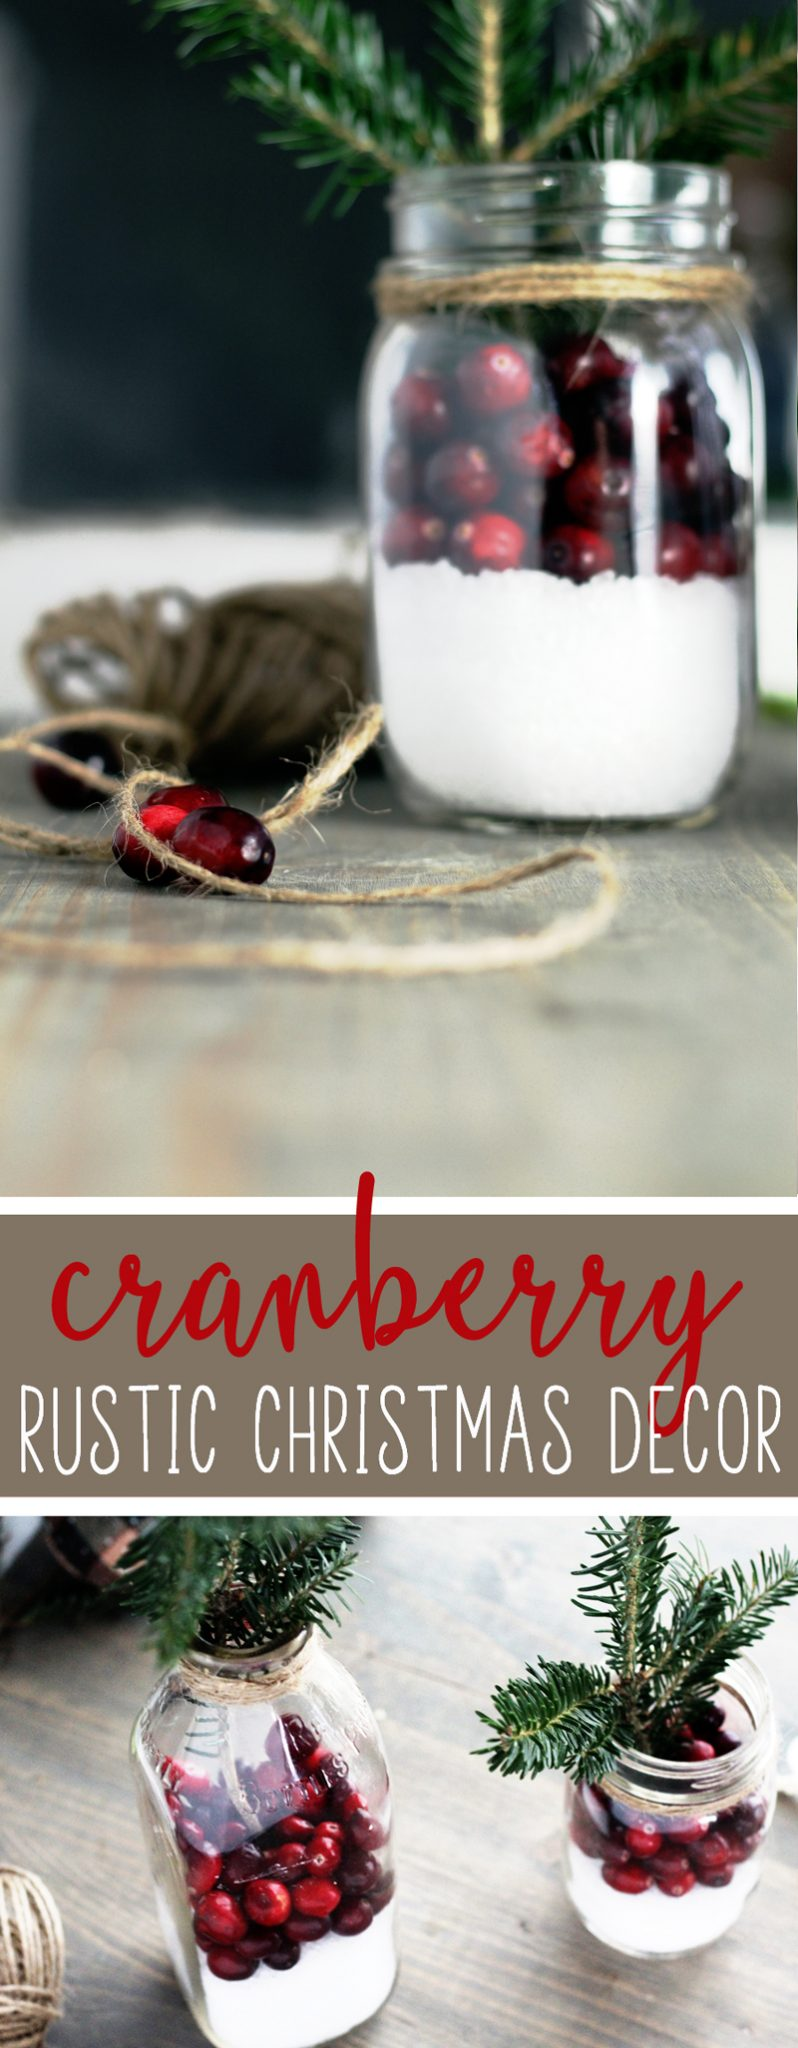 Making rustic Christmas decor is fast and easy, and this idea is inexpensive.